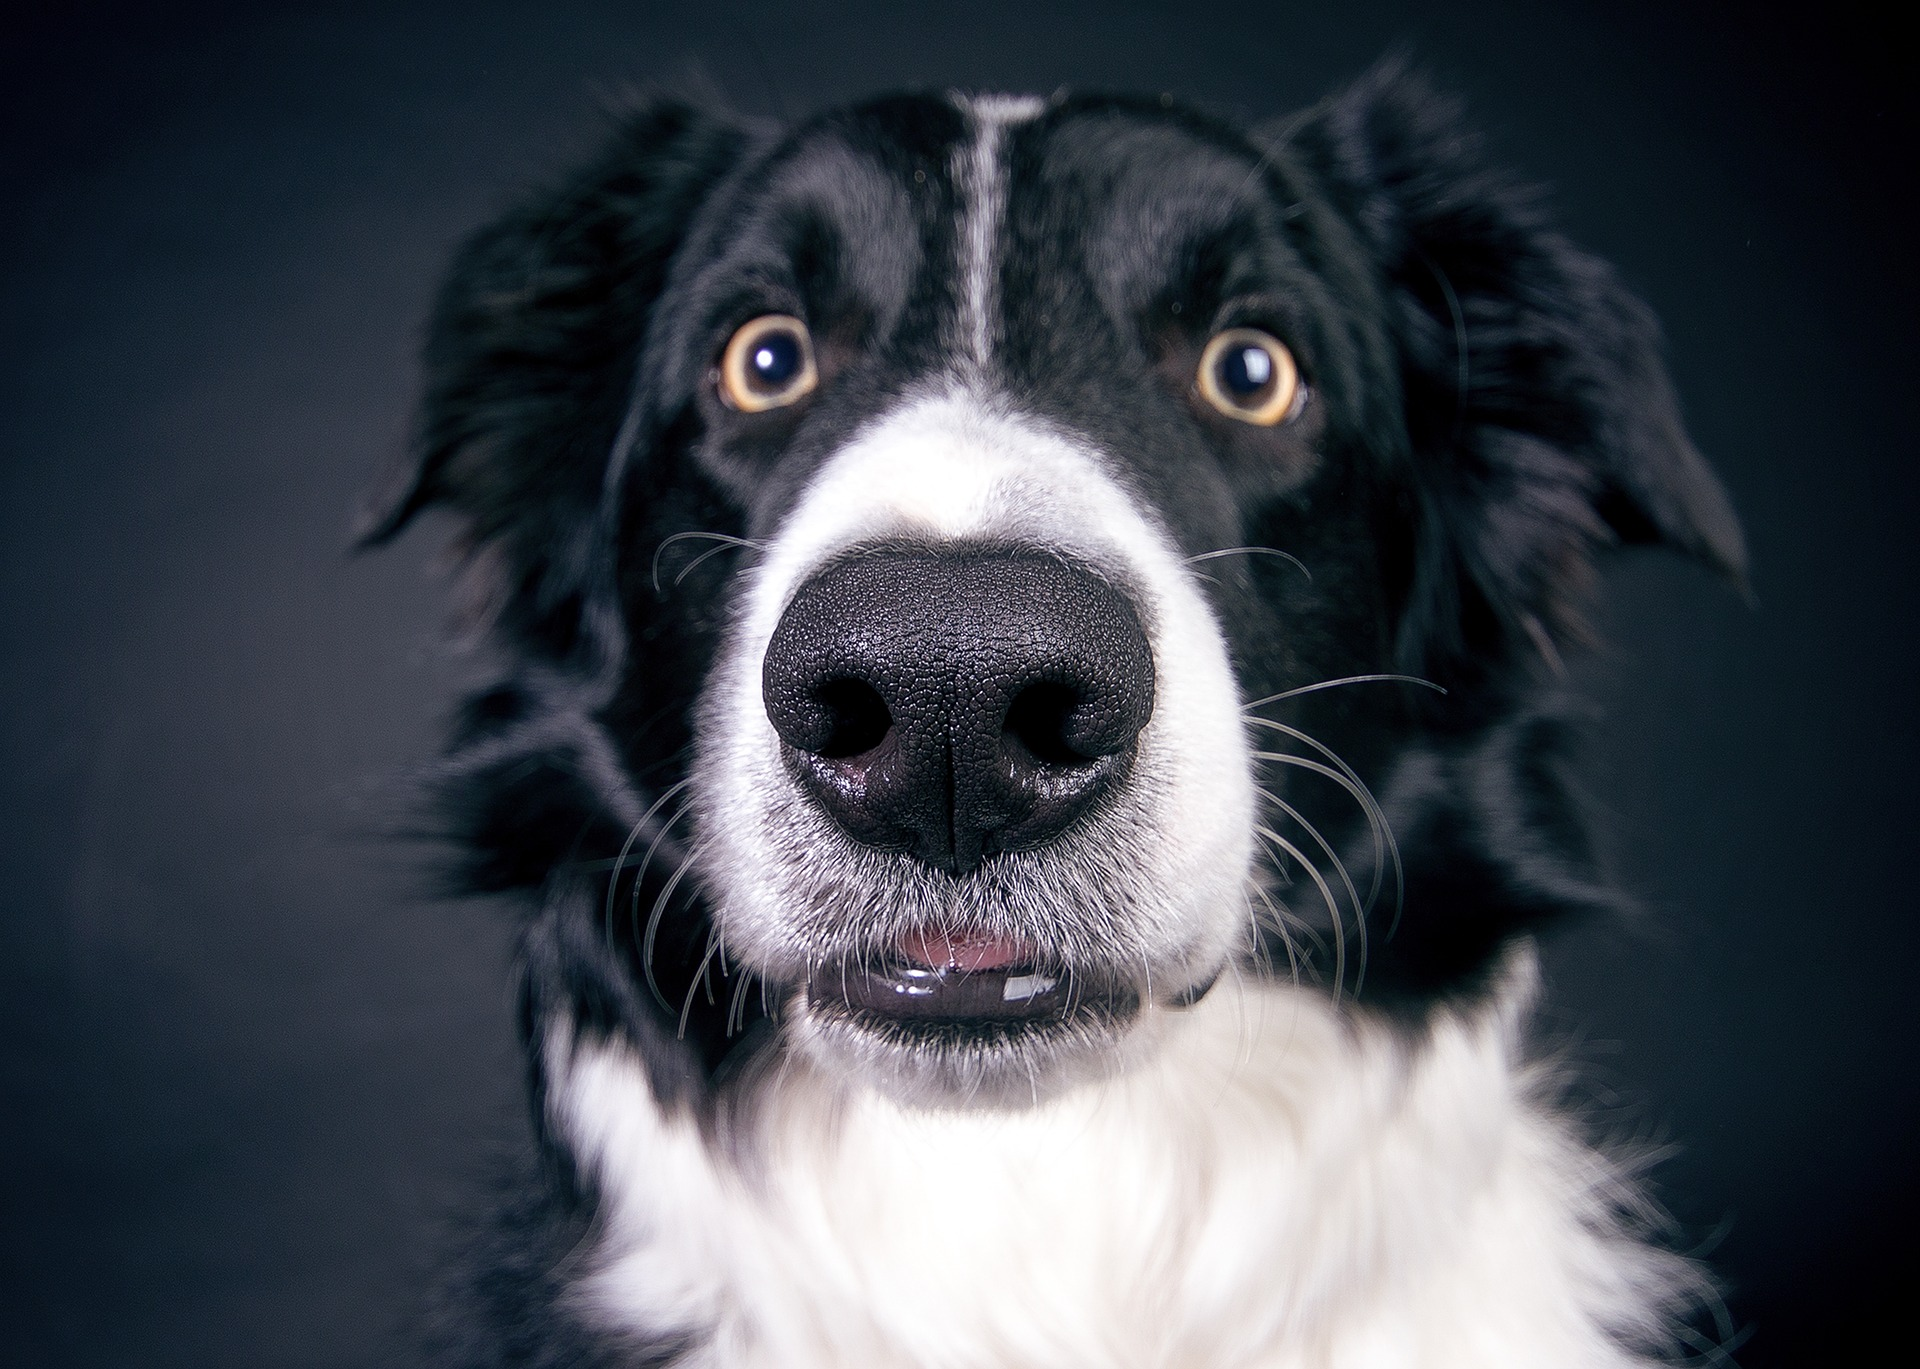 Dogs decipher our expressions